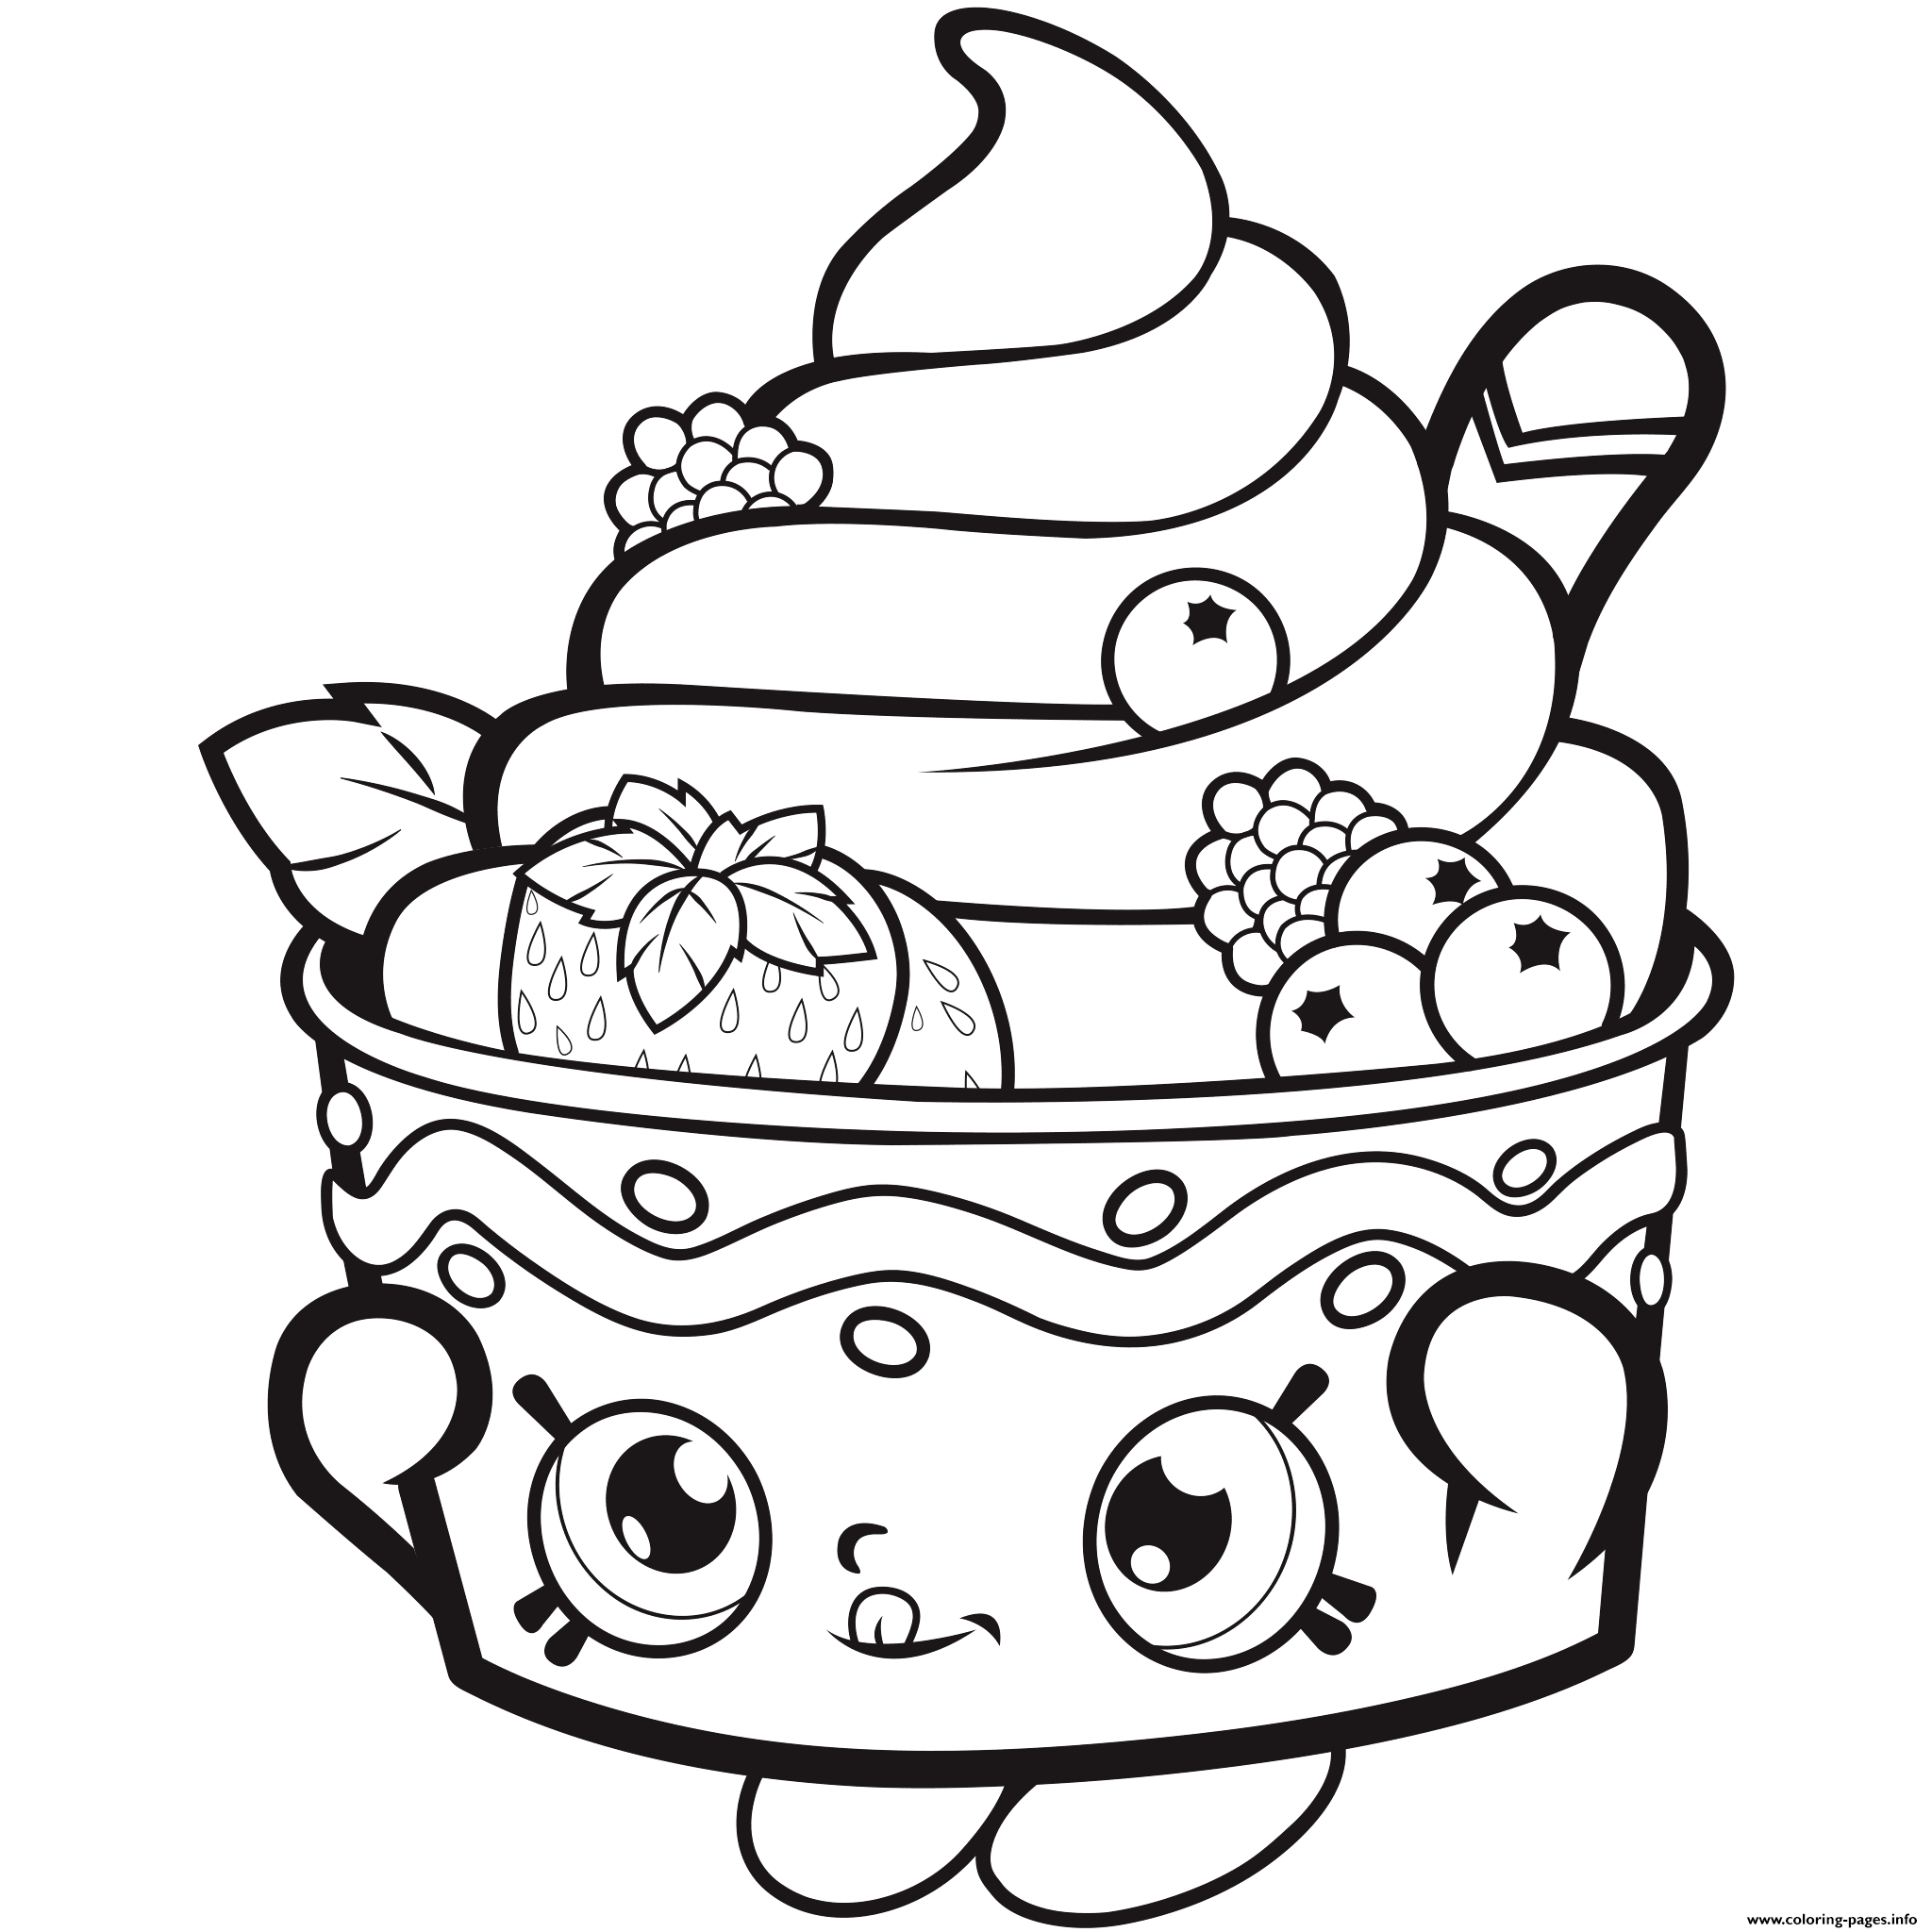 Ice Cream Coloring Pages Coloring Pages Ice Cream Shopkins Icecream ...